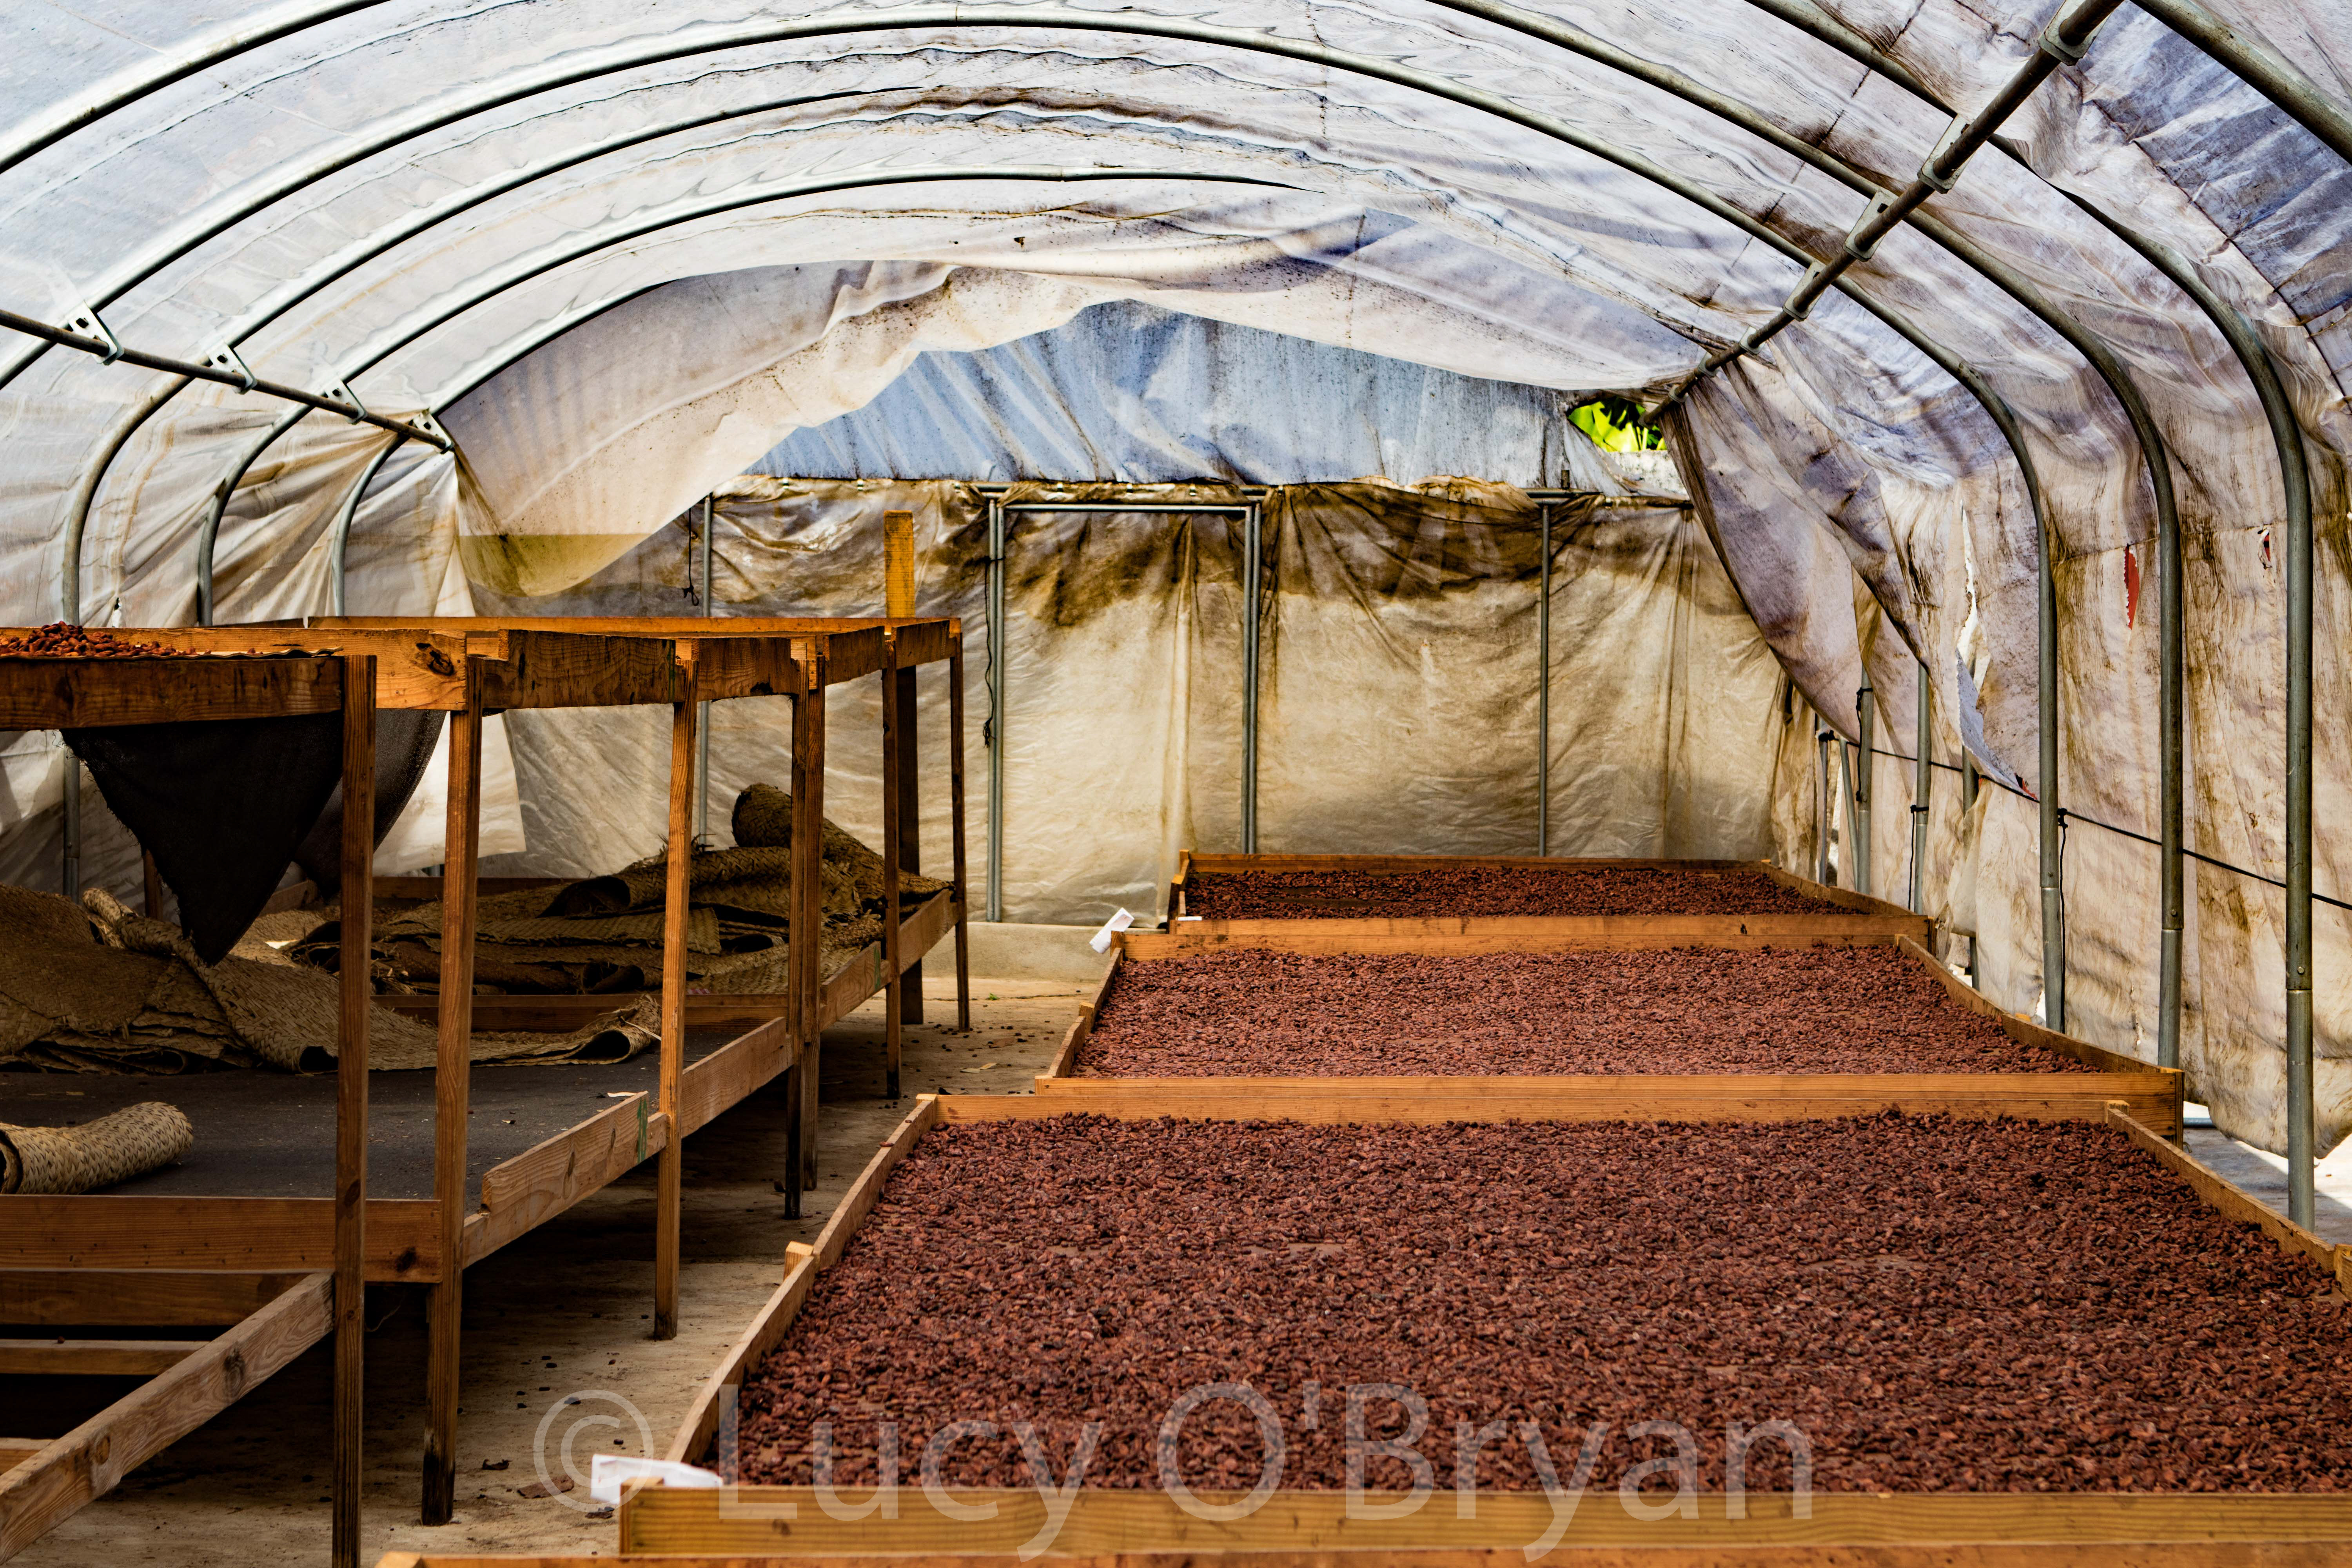 Dame Marie, Haiti. Drying Cacao